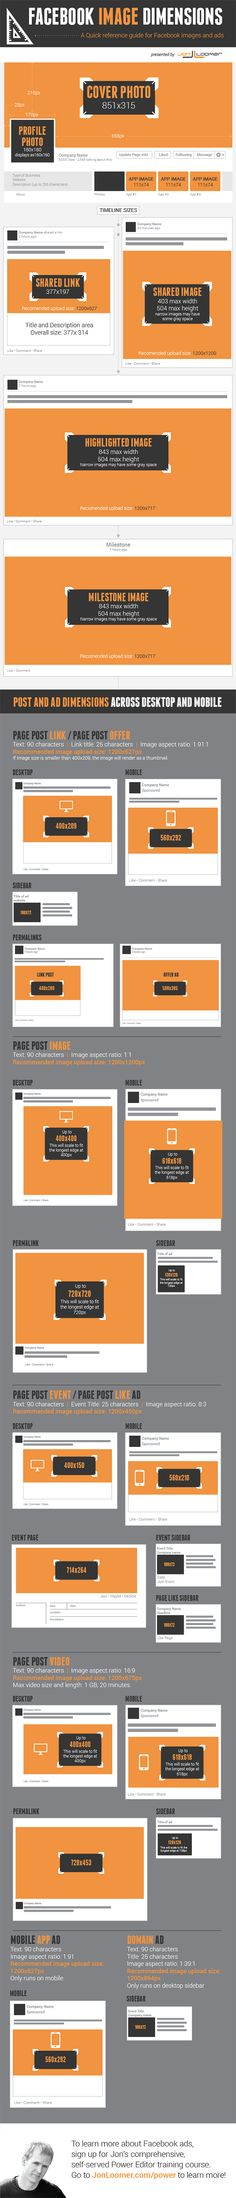 Create the Perfect Facebook Page With This Image Dimension Cheat Sheet #ORAwards #Social